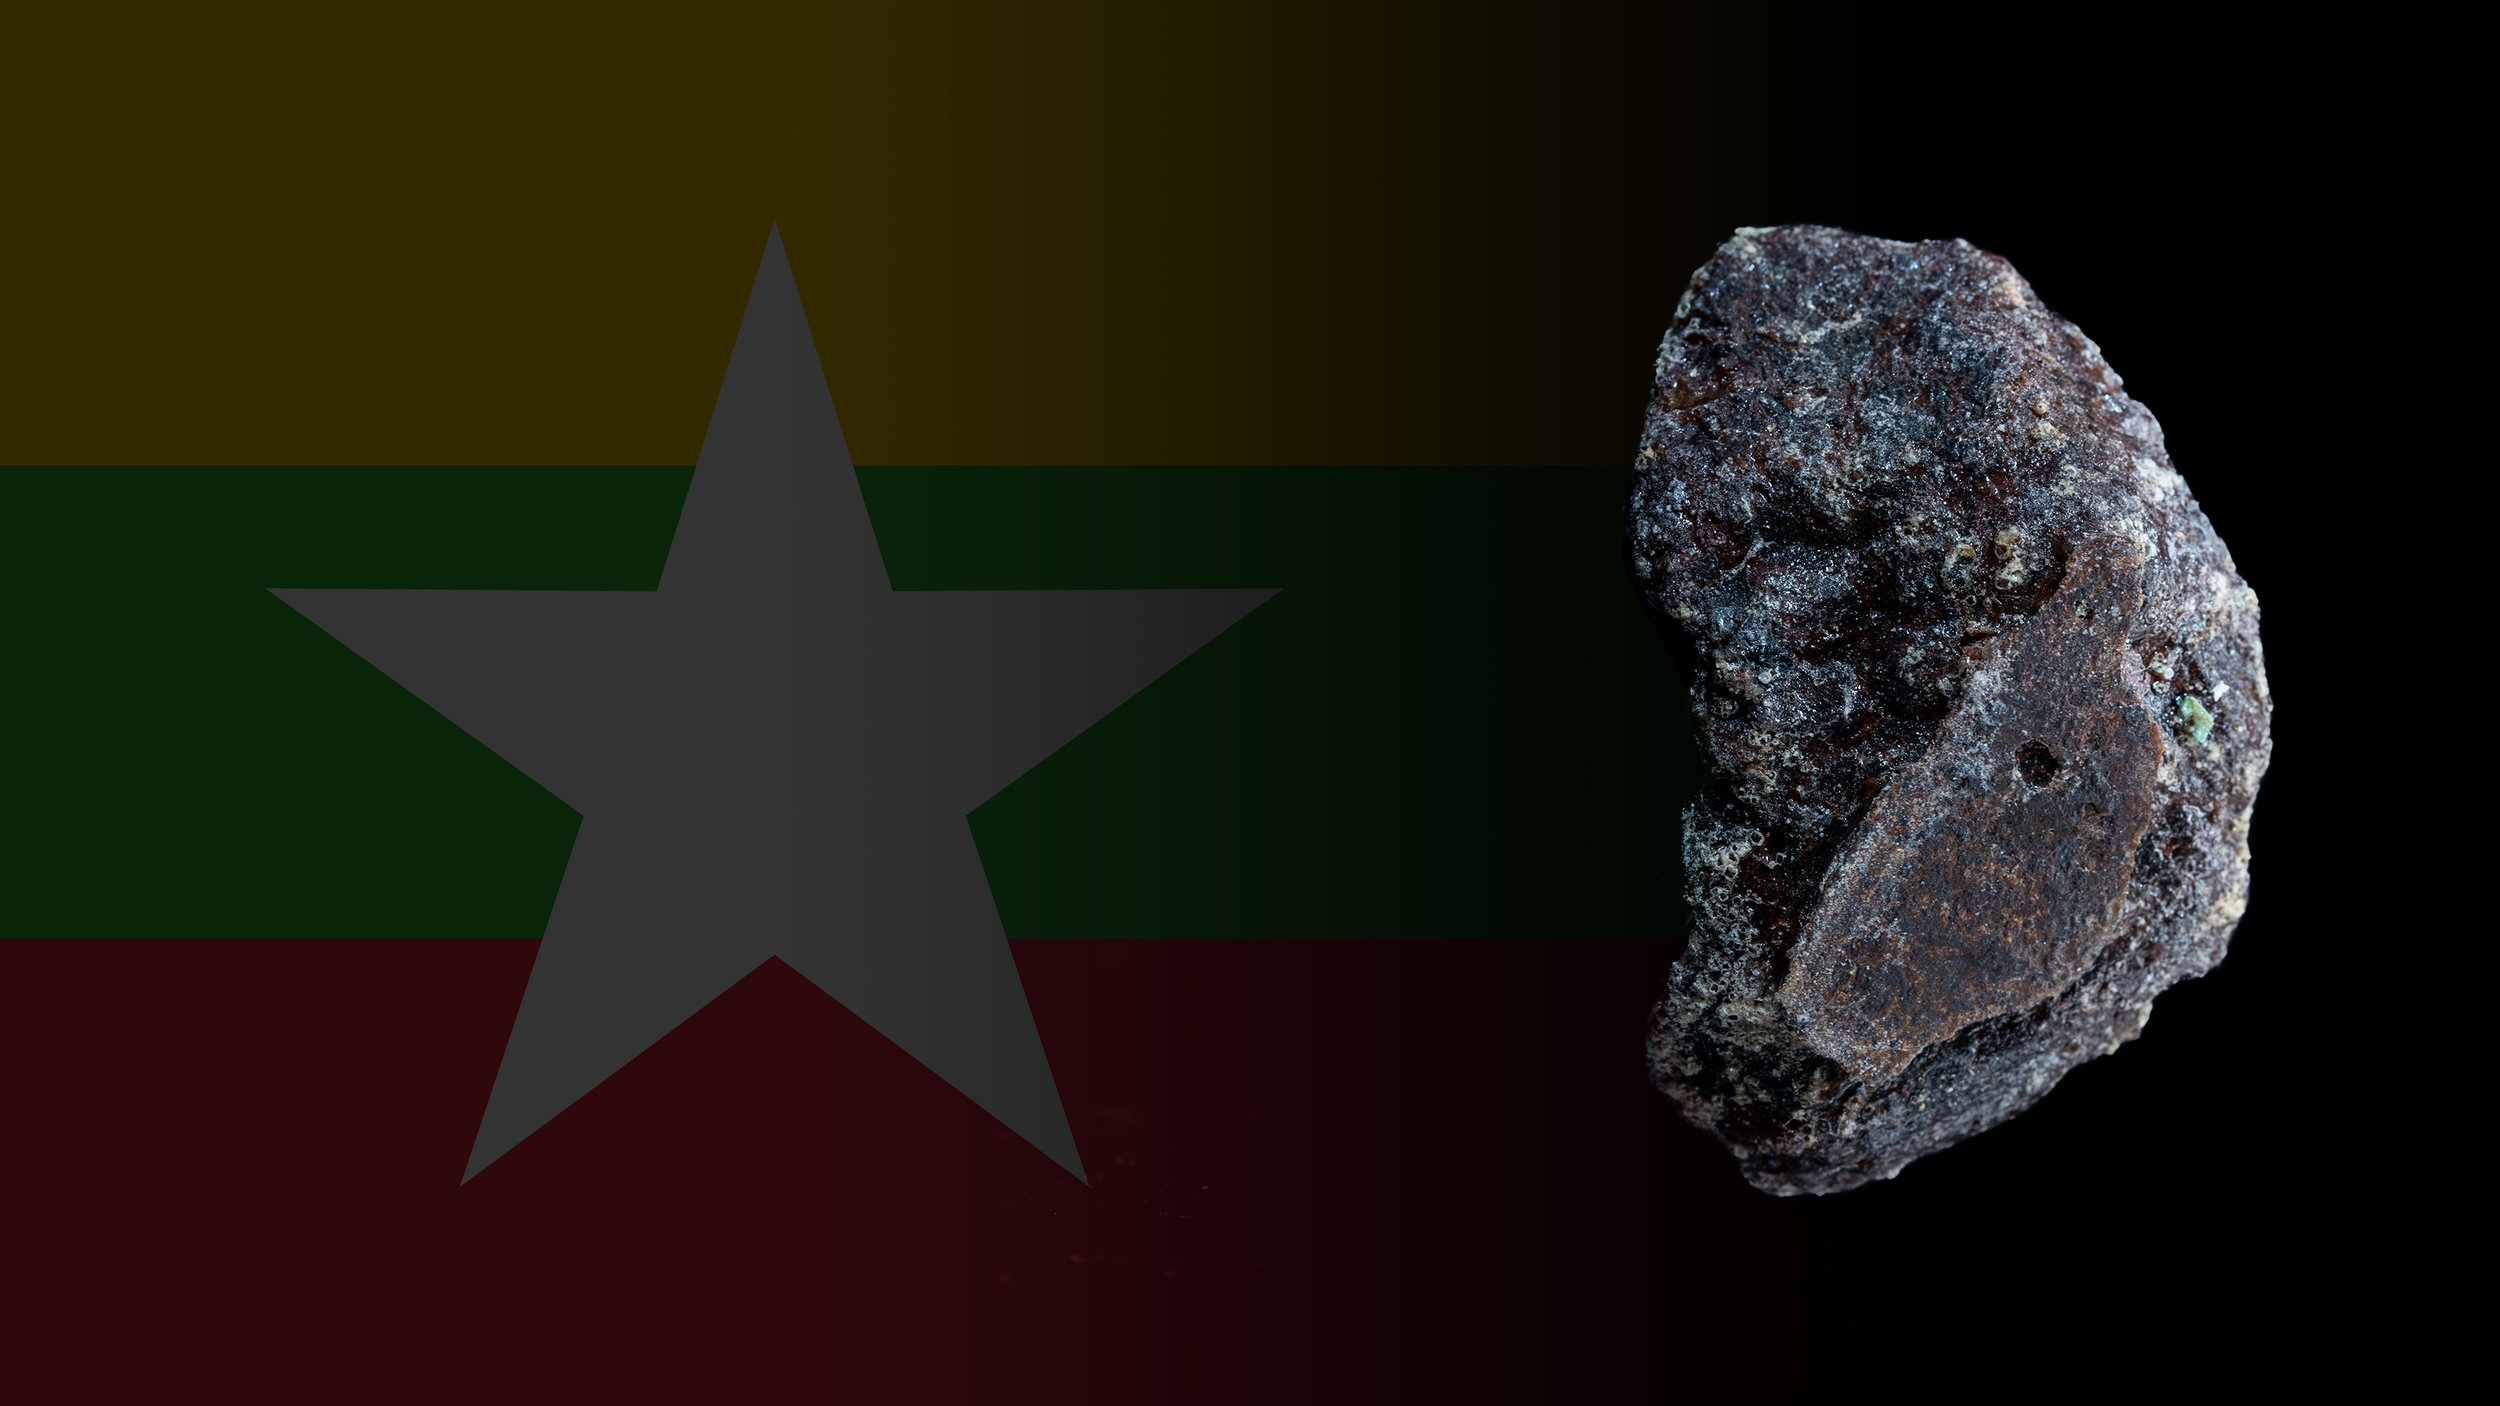 the Power stone - Painite stone - MyanmarThis stone was once considered one of the rarestminerals on Earth. It was found in Myanmar by British mineralogist Arthur Pain in the 1950s.The mineral was named after him.Painite has a brownish-red color due to iron traces.